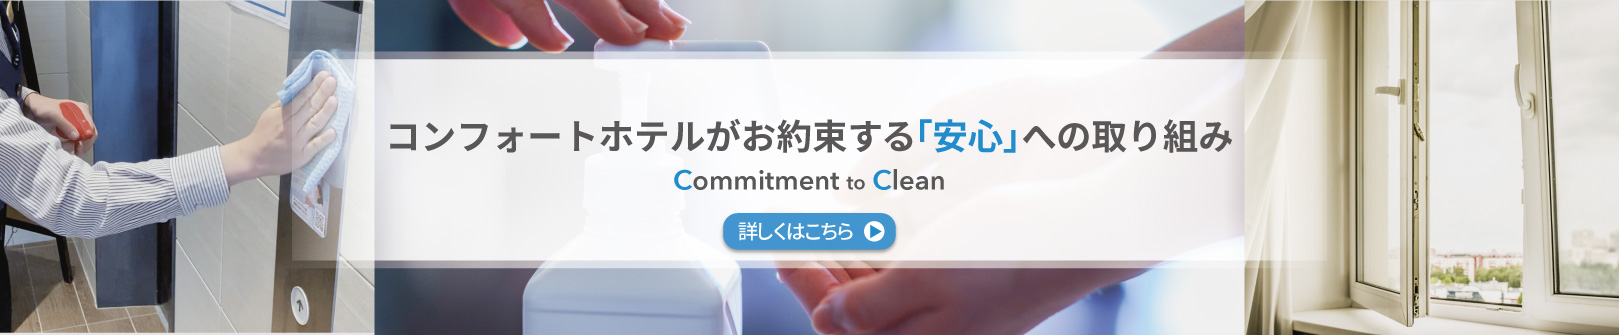 commit ment to clean